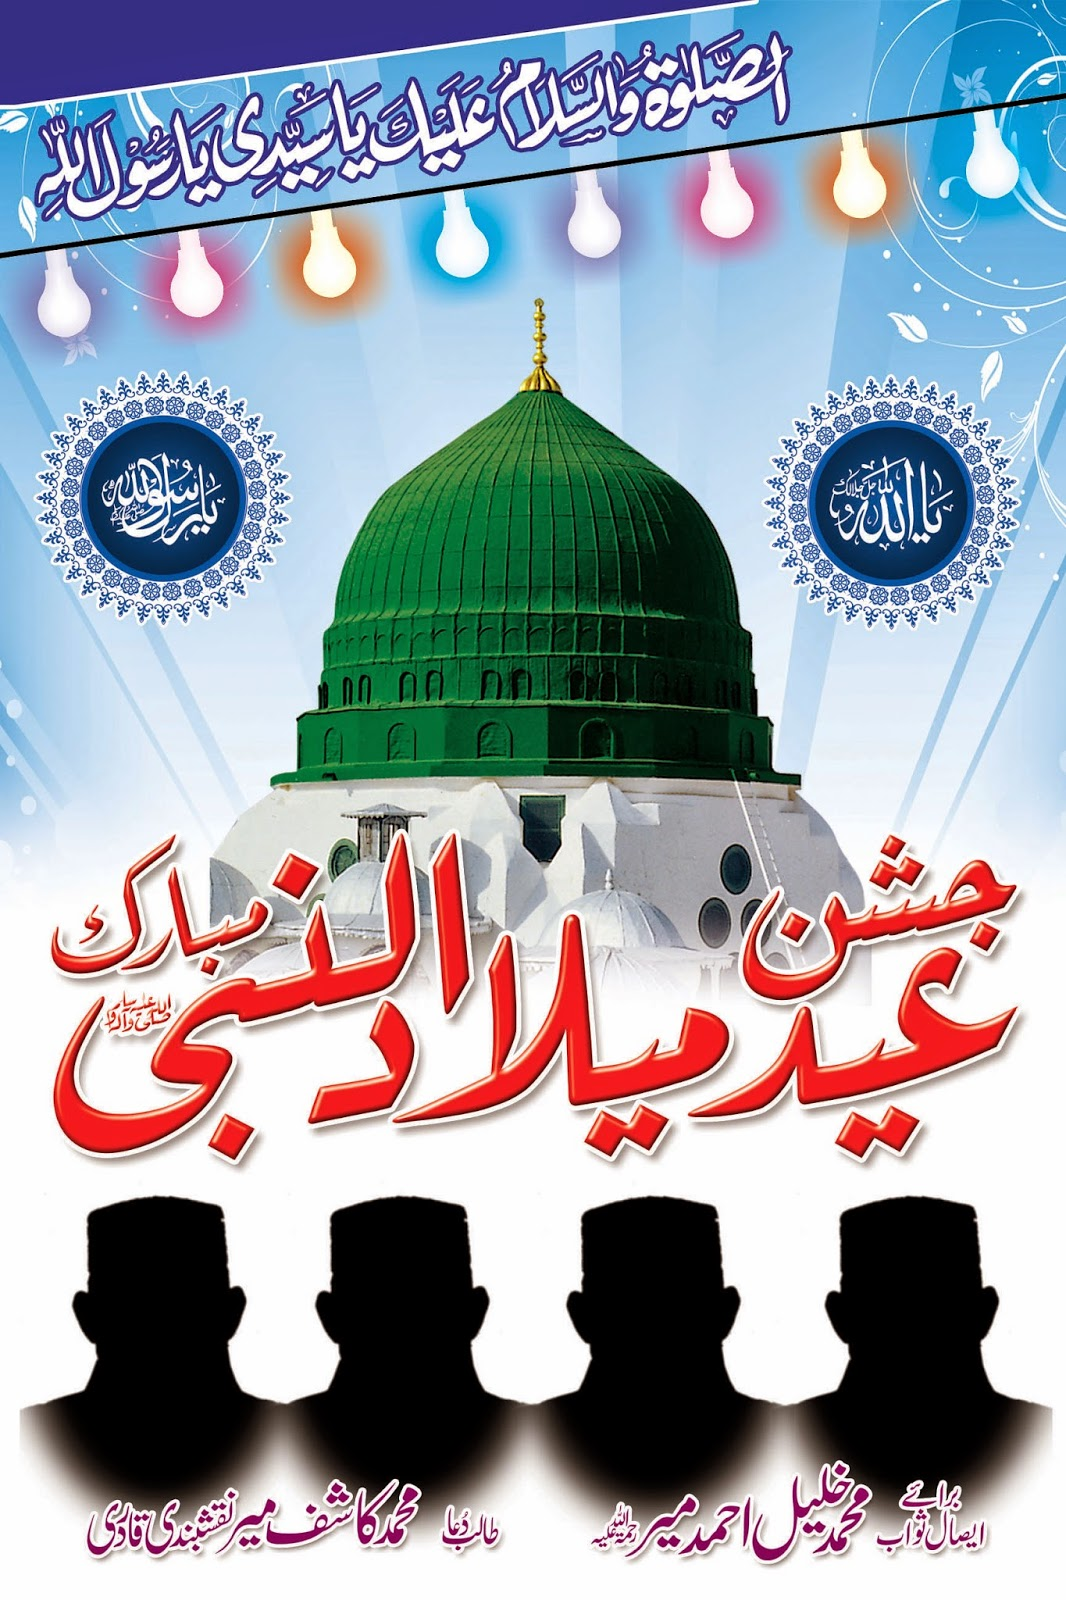 Fezan e murshid e kareem 12 rabi ul awal 2014 designs by for 12 rabi ul awal 2014 decoration